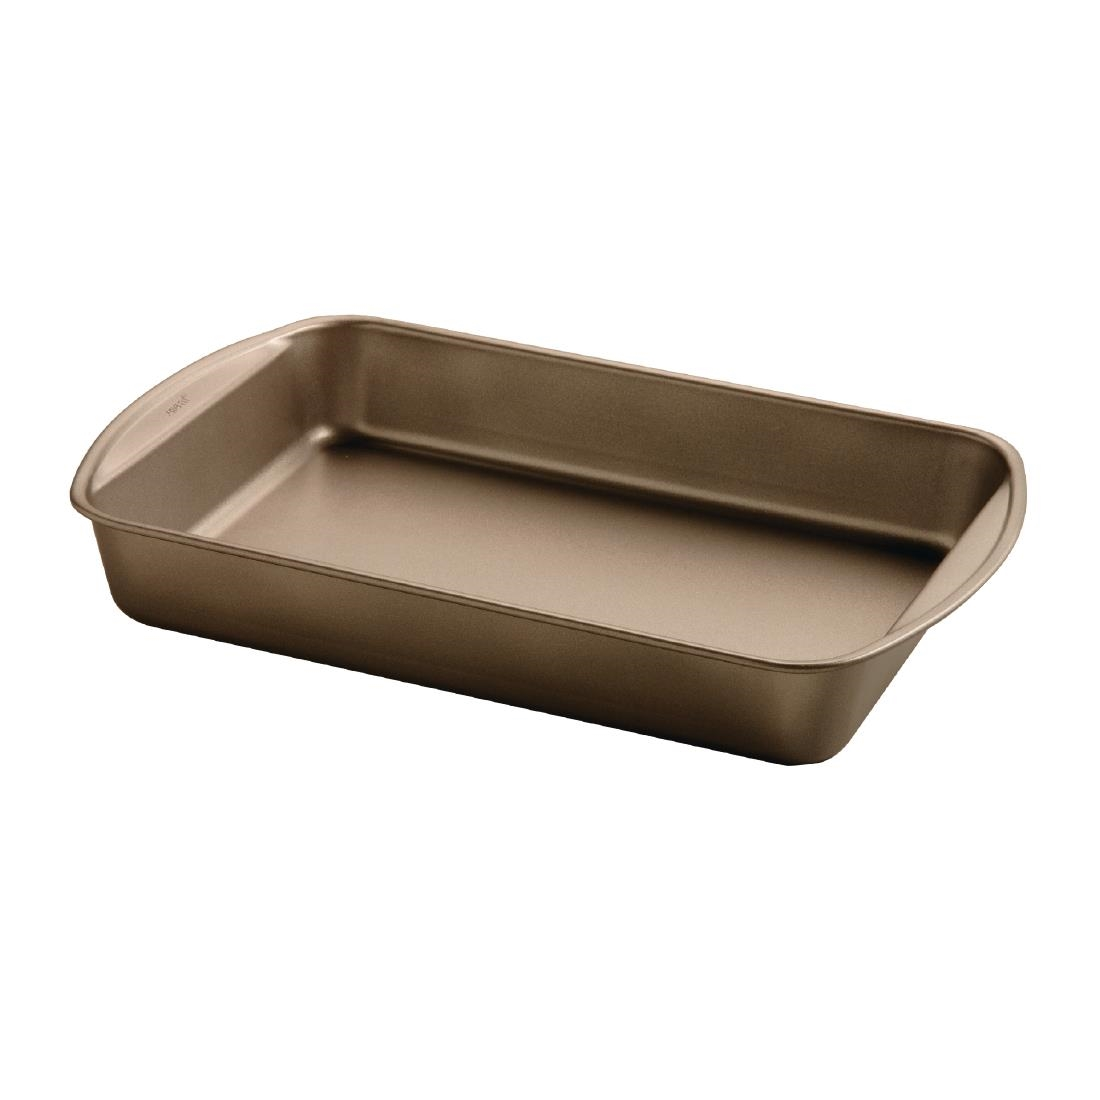 Image of Avanti Non Stick Roasting Pan 380mm